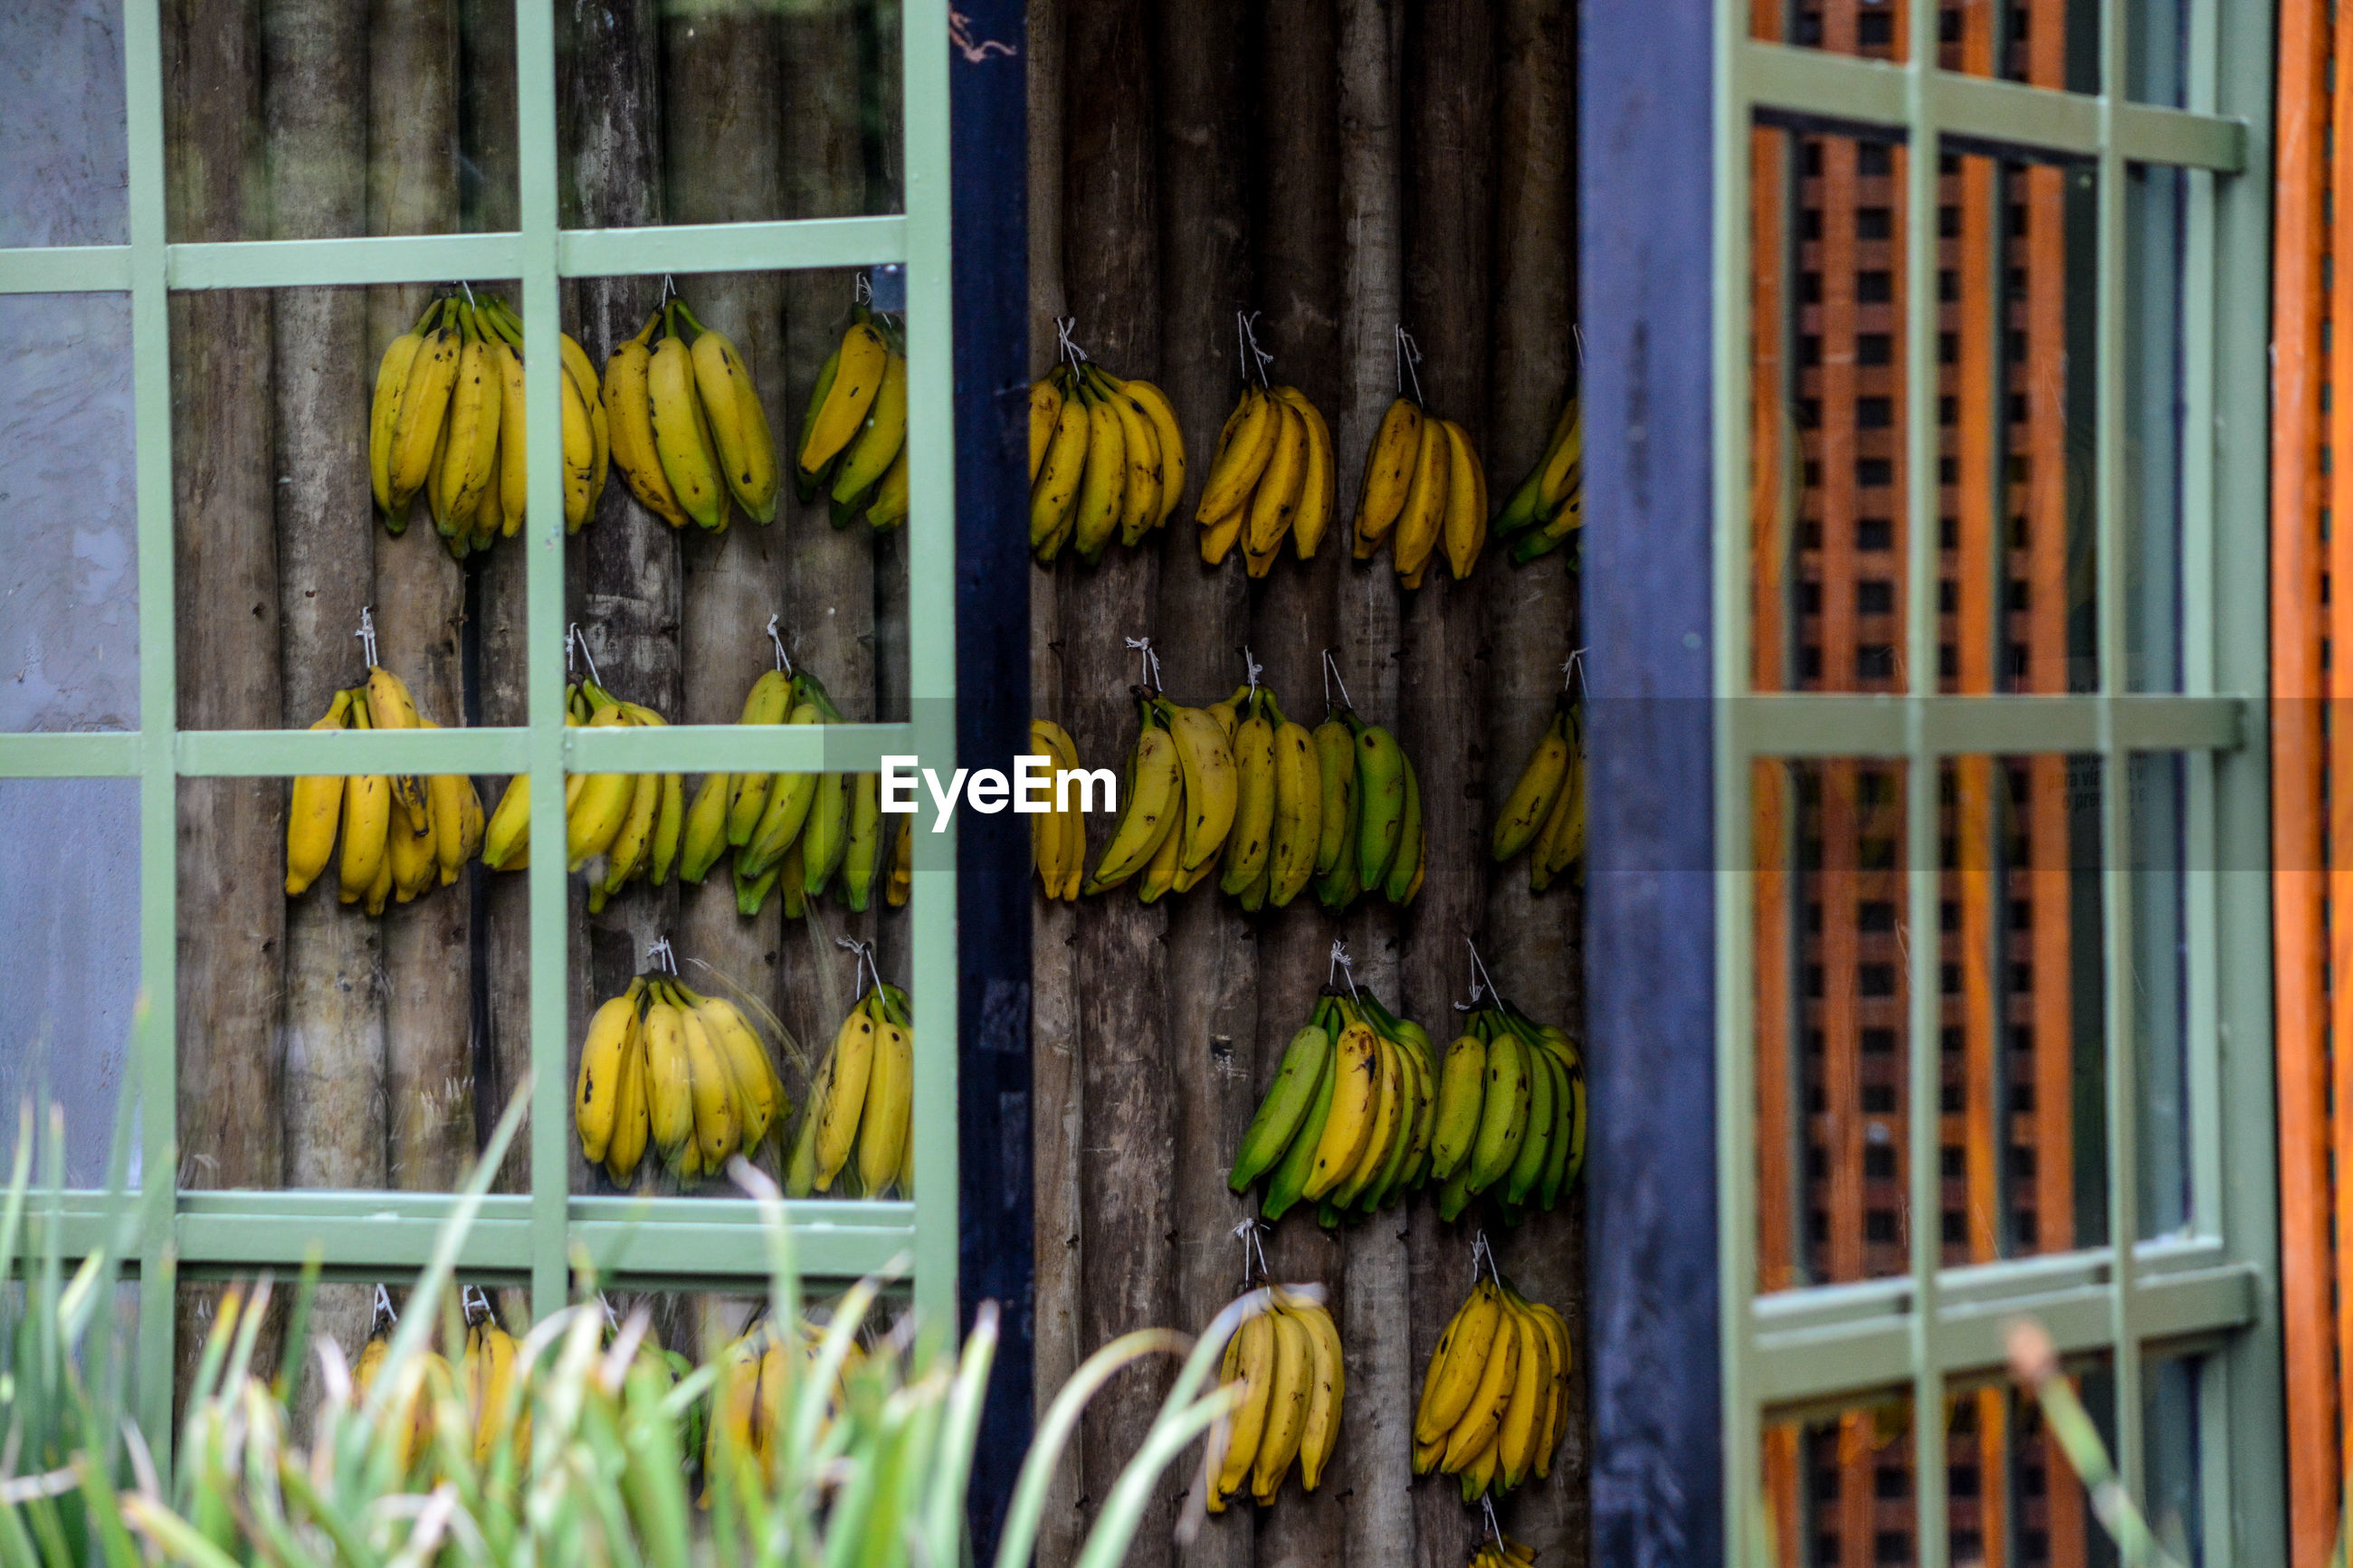 Close-up of window with plants and bananas